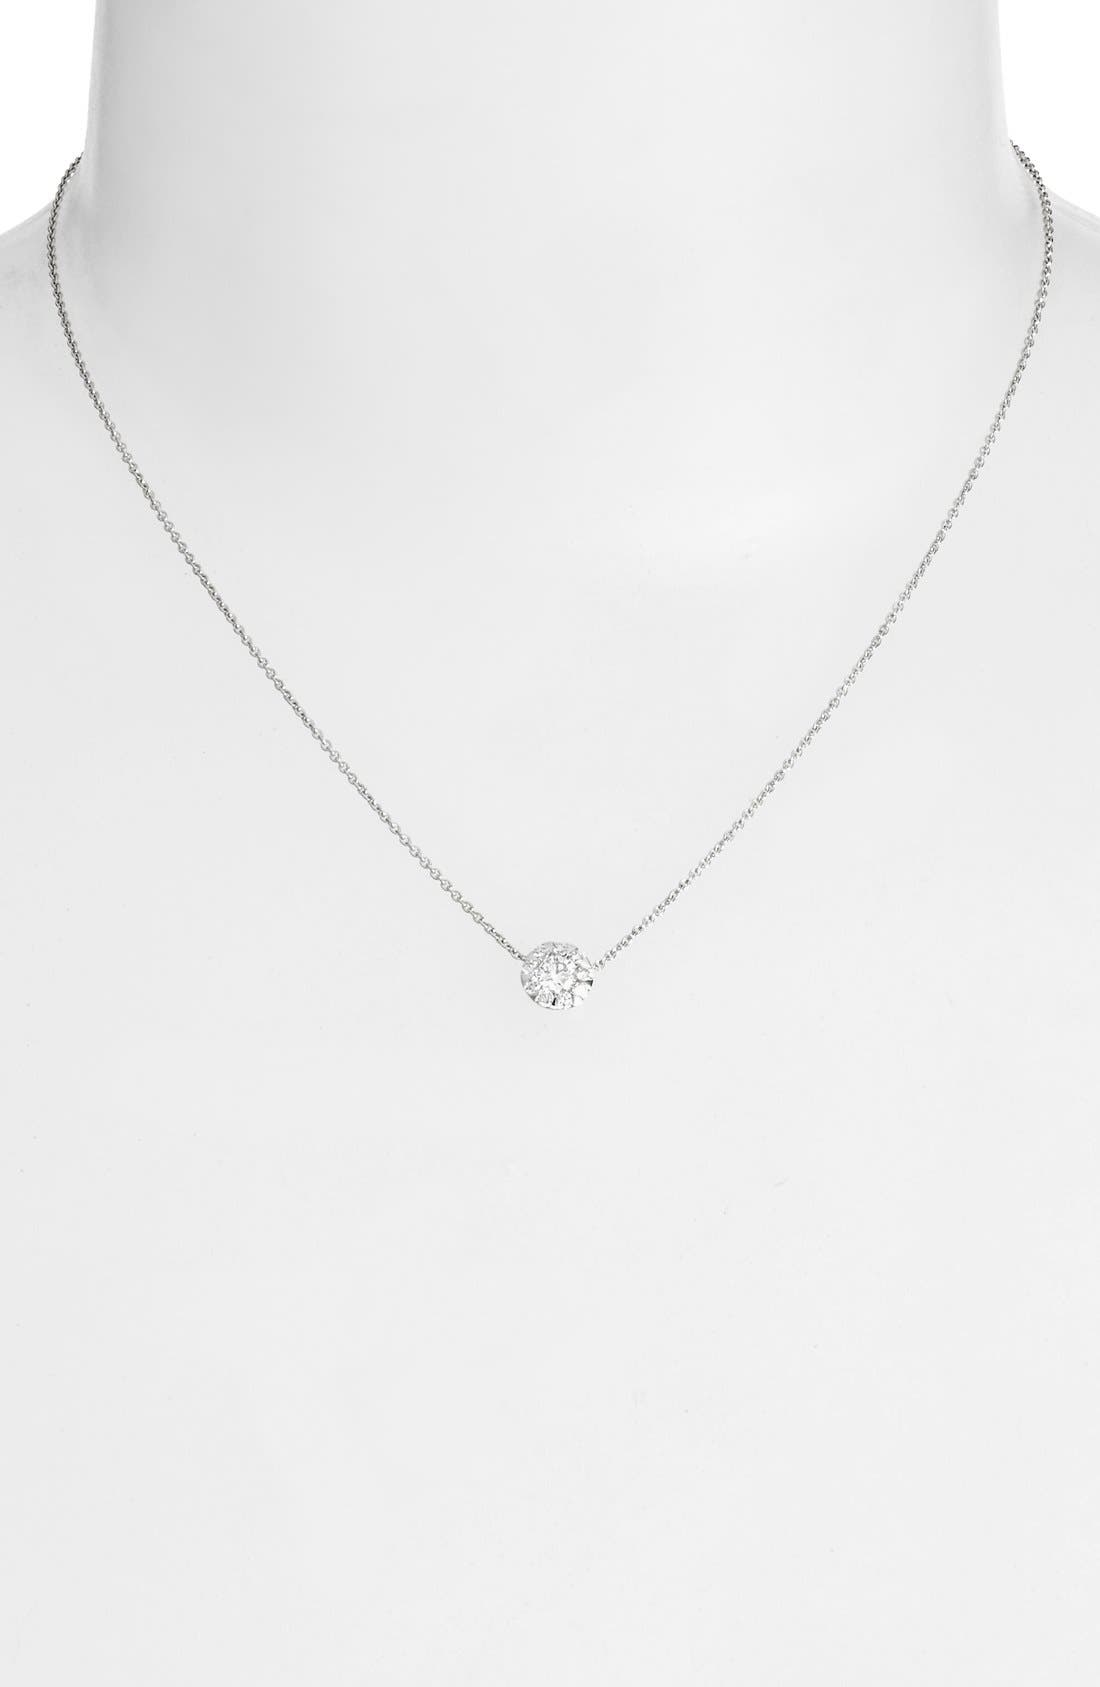 'Sunburst' Diamond Pendant Necklace,                             Alternate thumbnail 2, color,                             WHITE GOLD